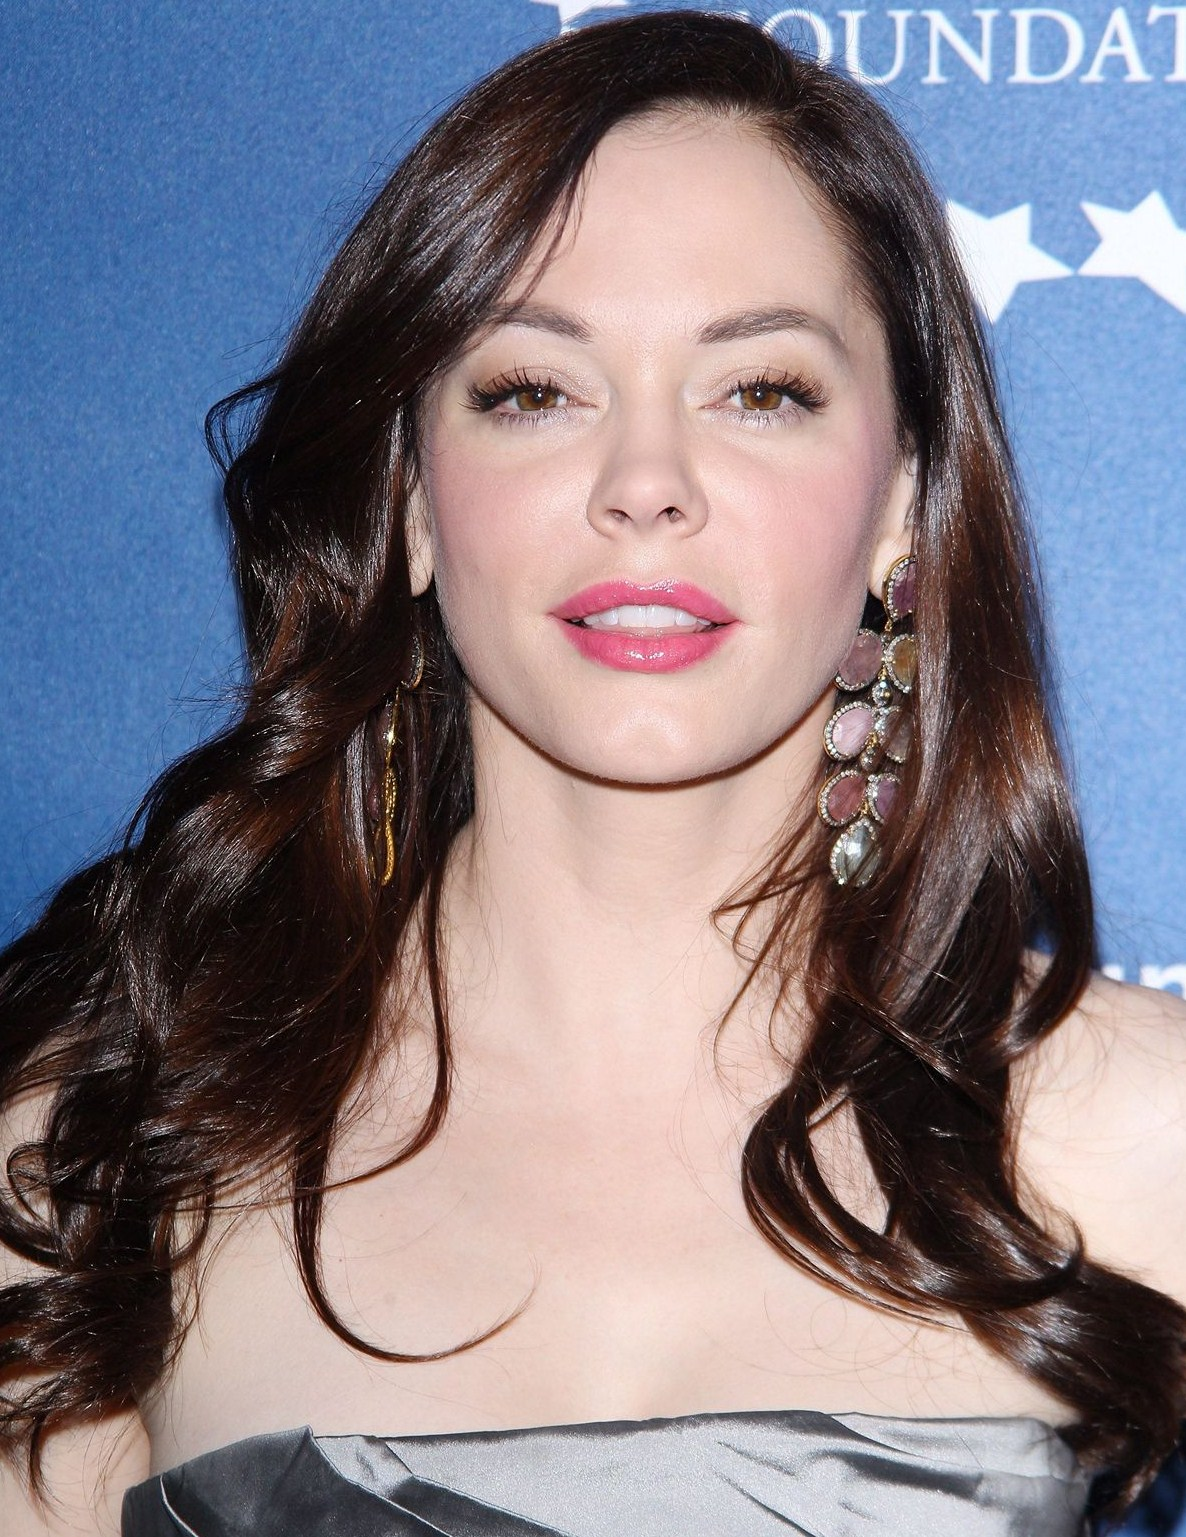 Rose McGowan | Charmed Forever Wiki | FANDOM powered by Wikia